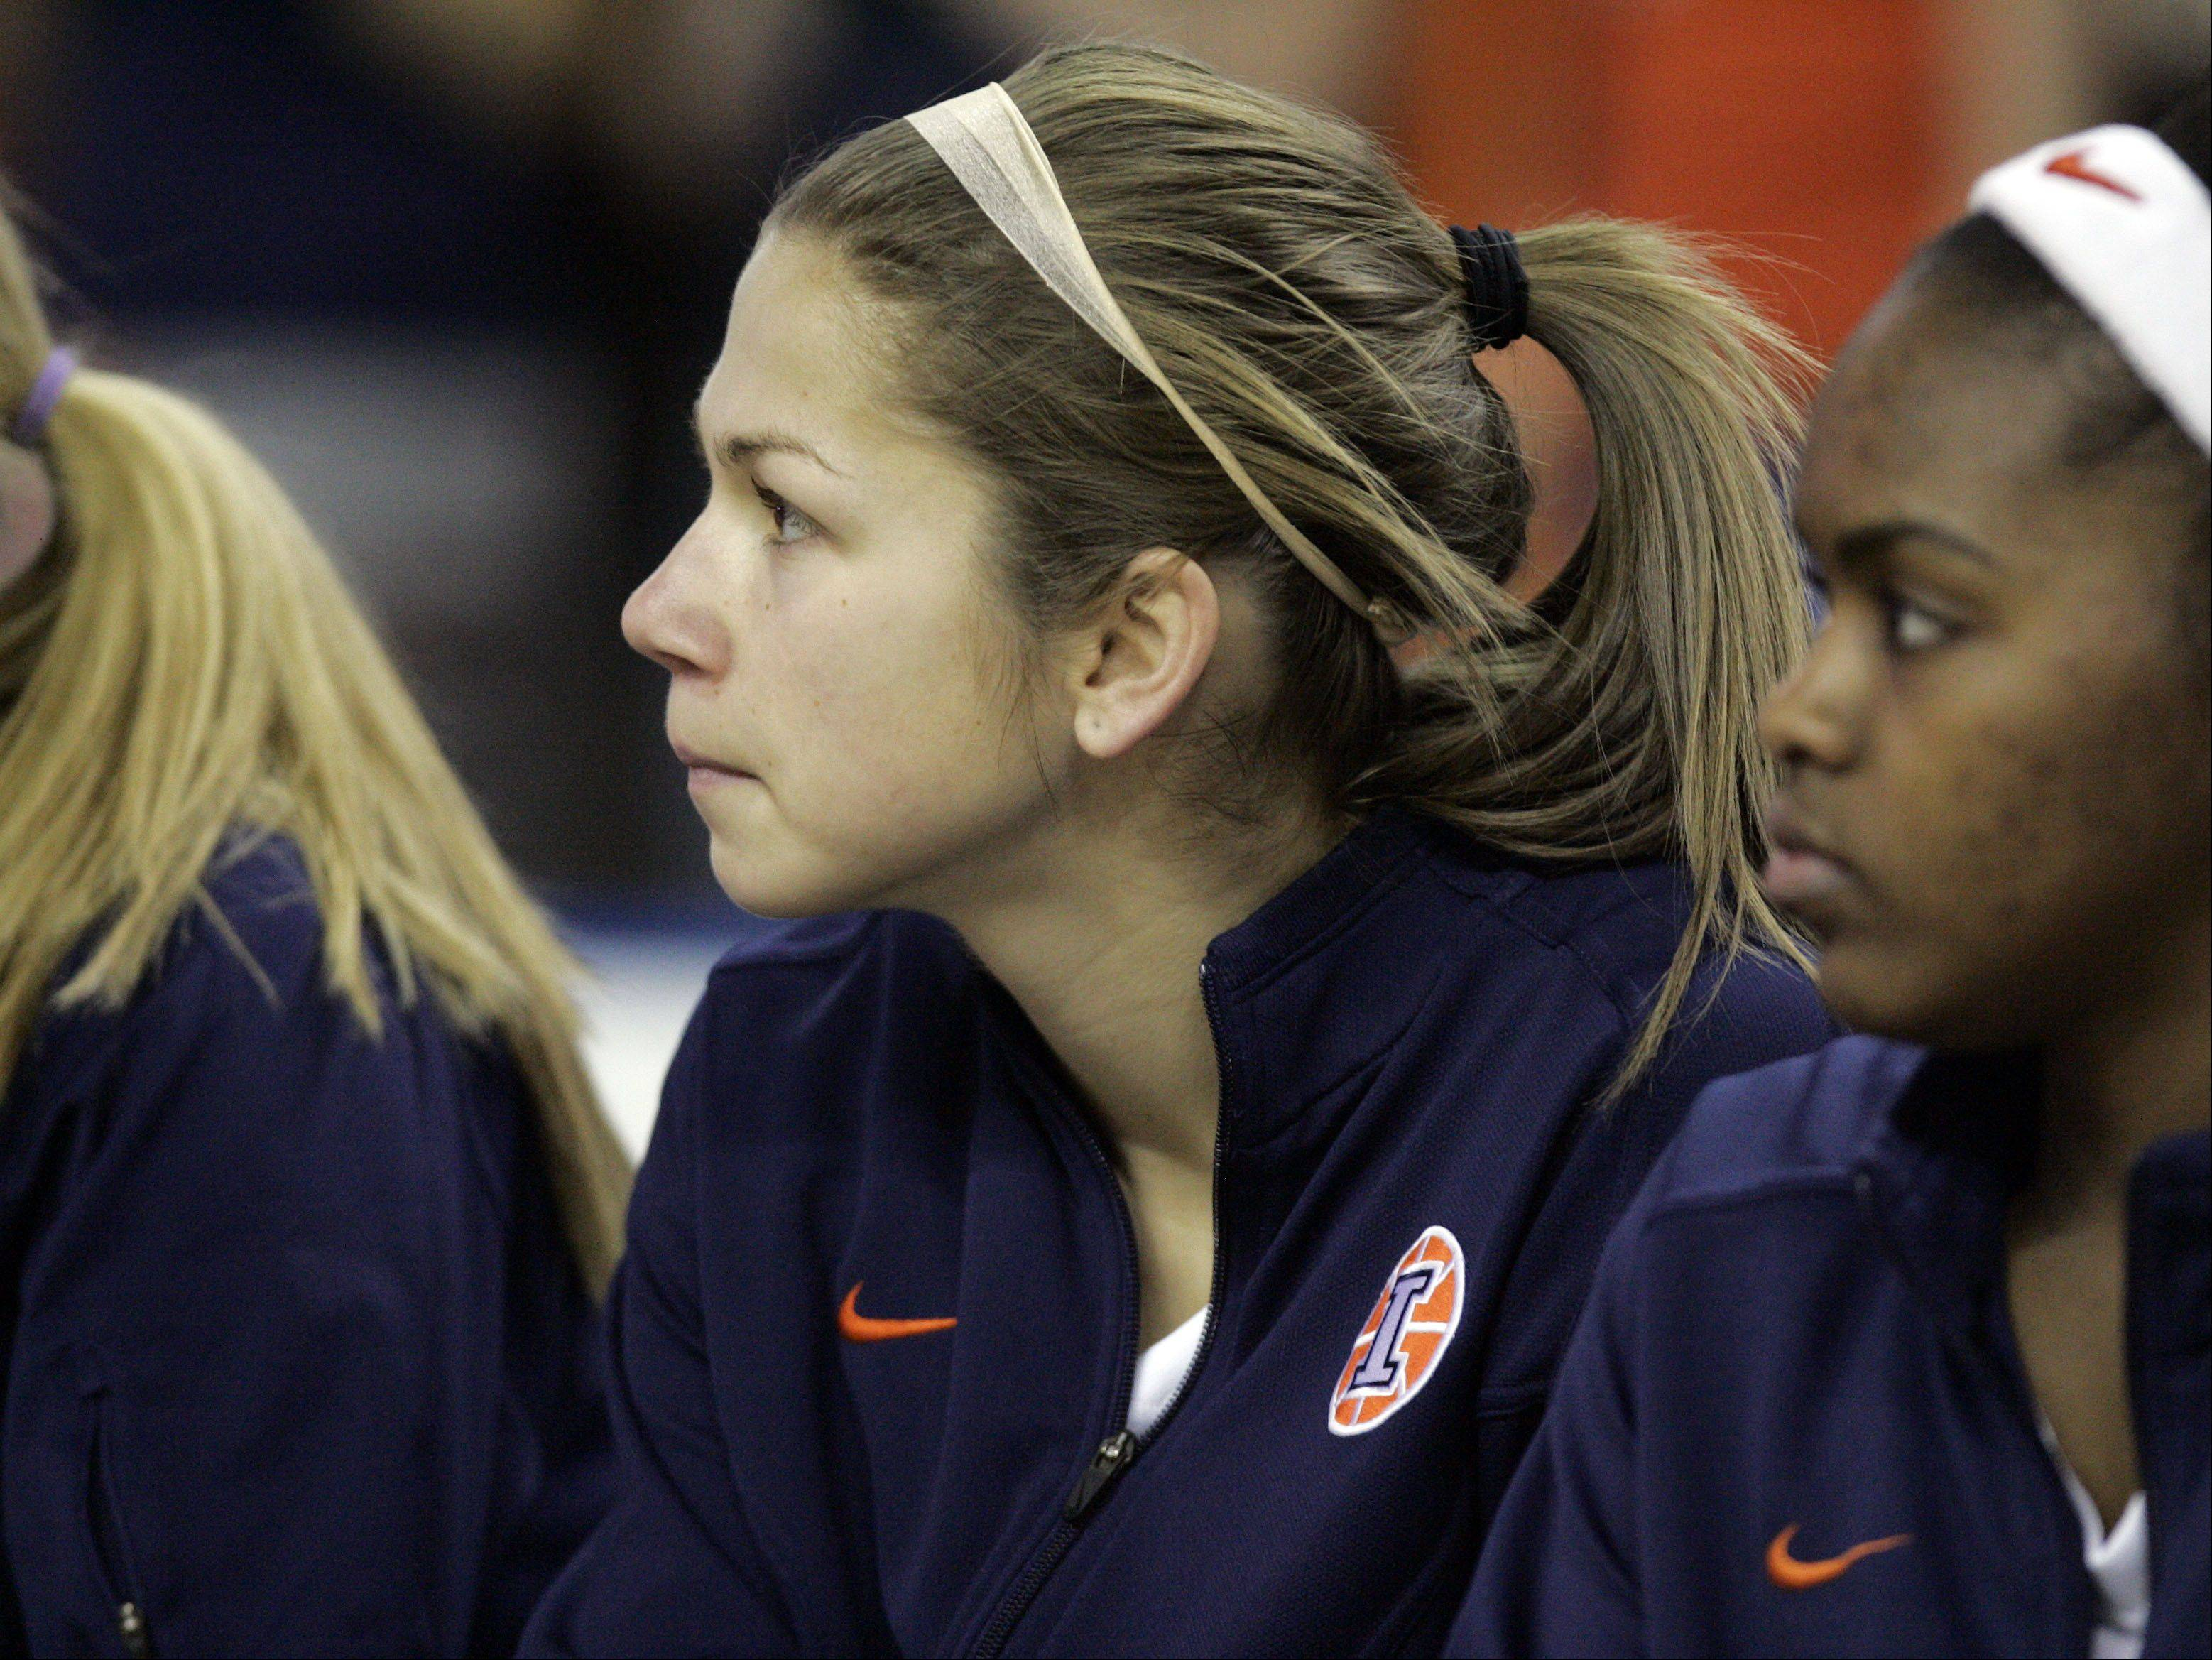 Hampshire and ECC graduate Cassie Dumoulin, who played at Illinois this season, watches from the bench the Illini's loss to Wisconsin Thursday in the Big Ten women's basketball tournament at the Sears Centre in Hoffman Estates.